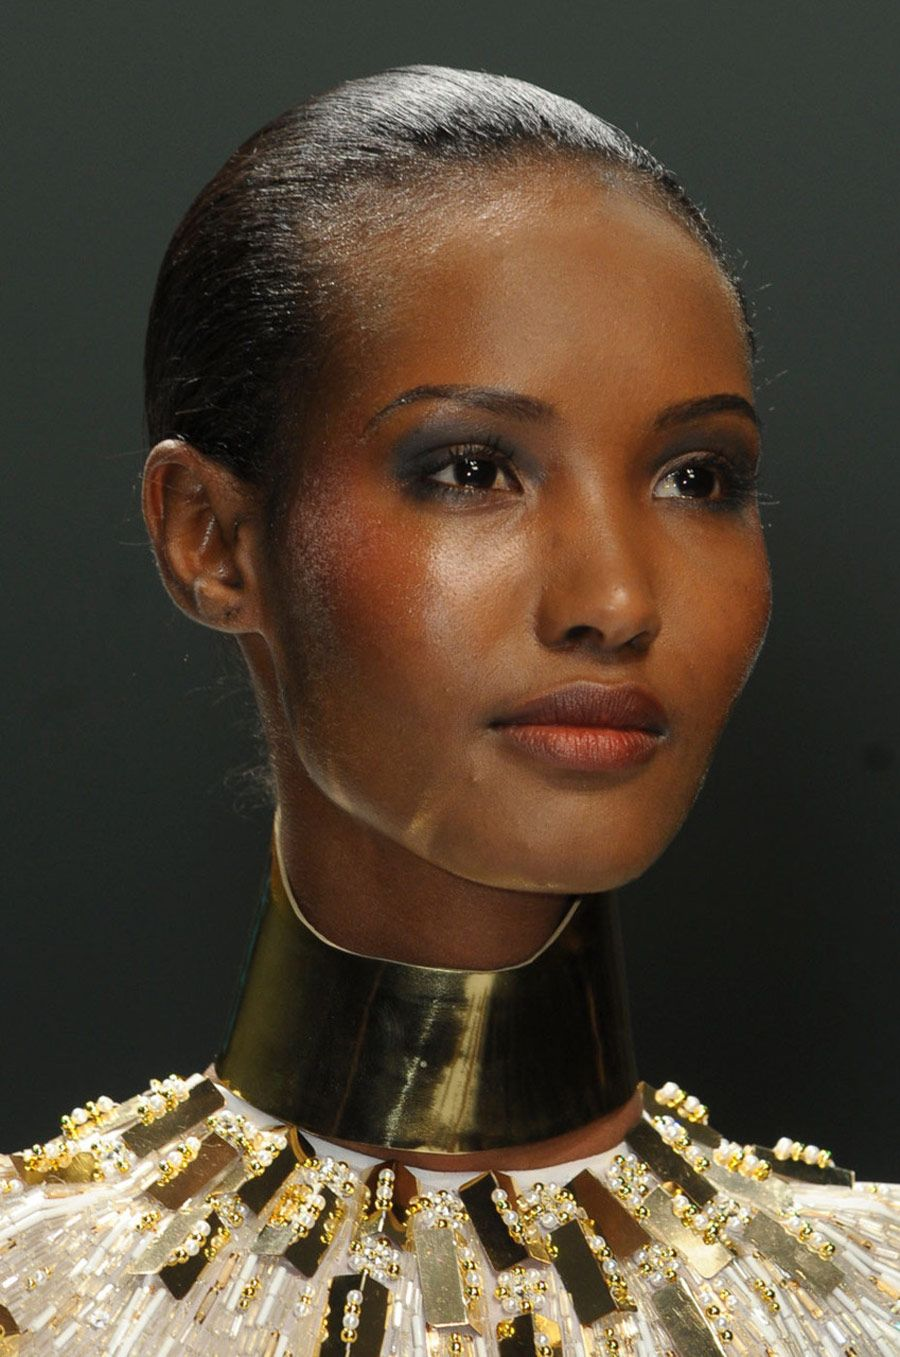 Model female somali circumcised